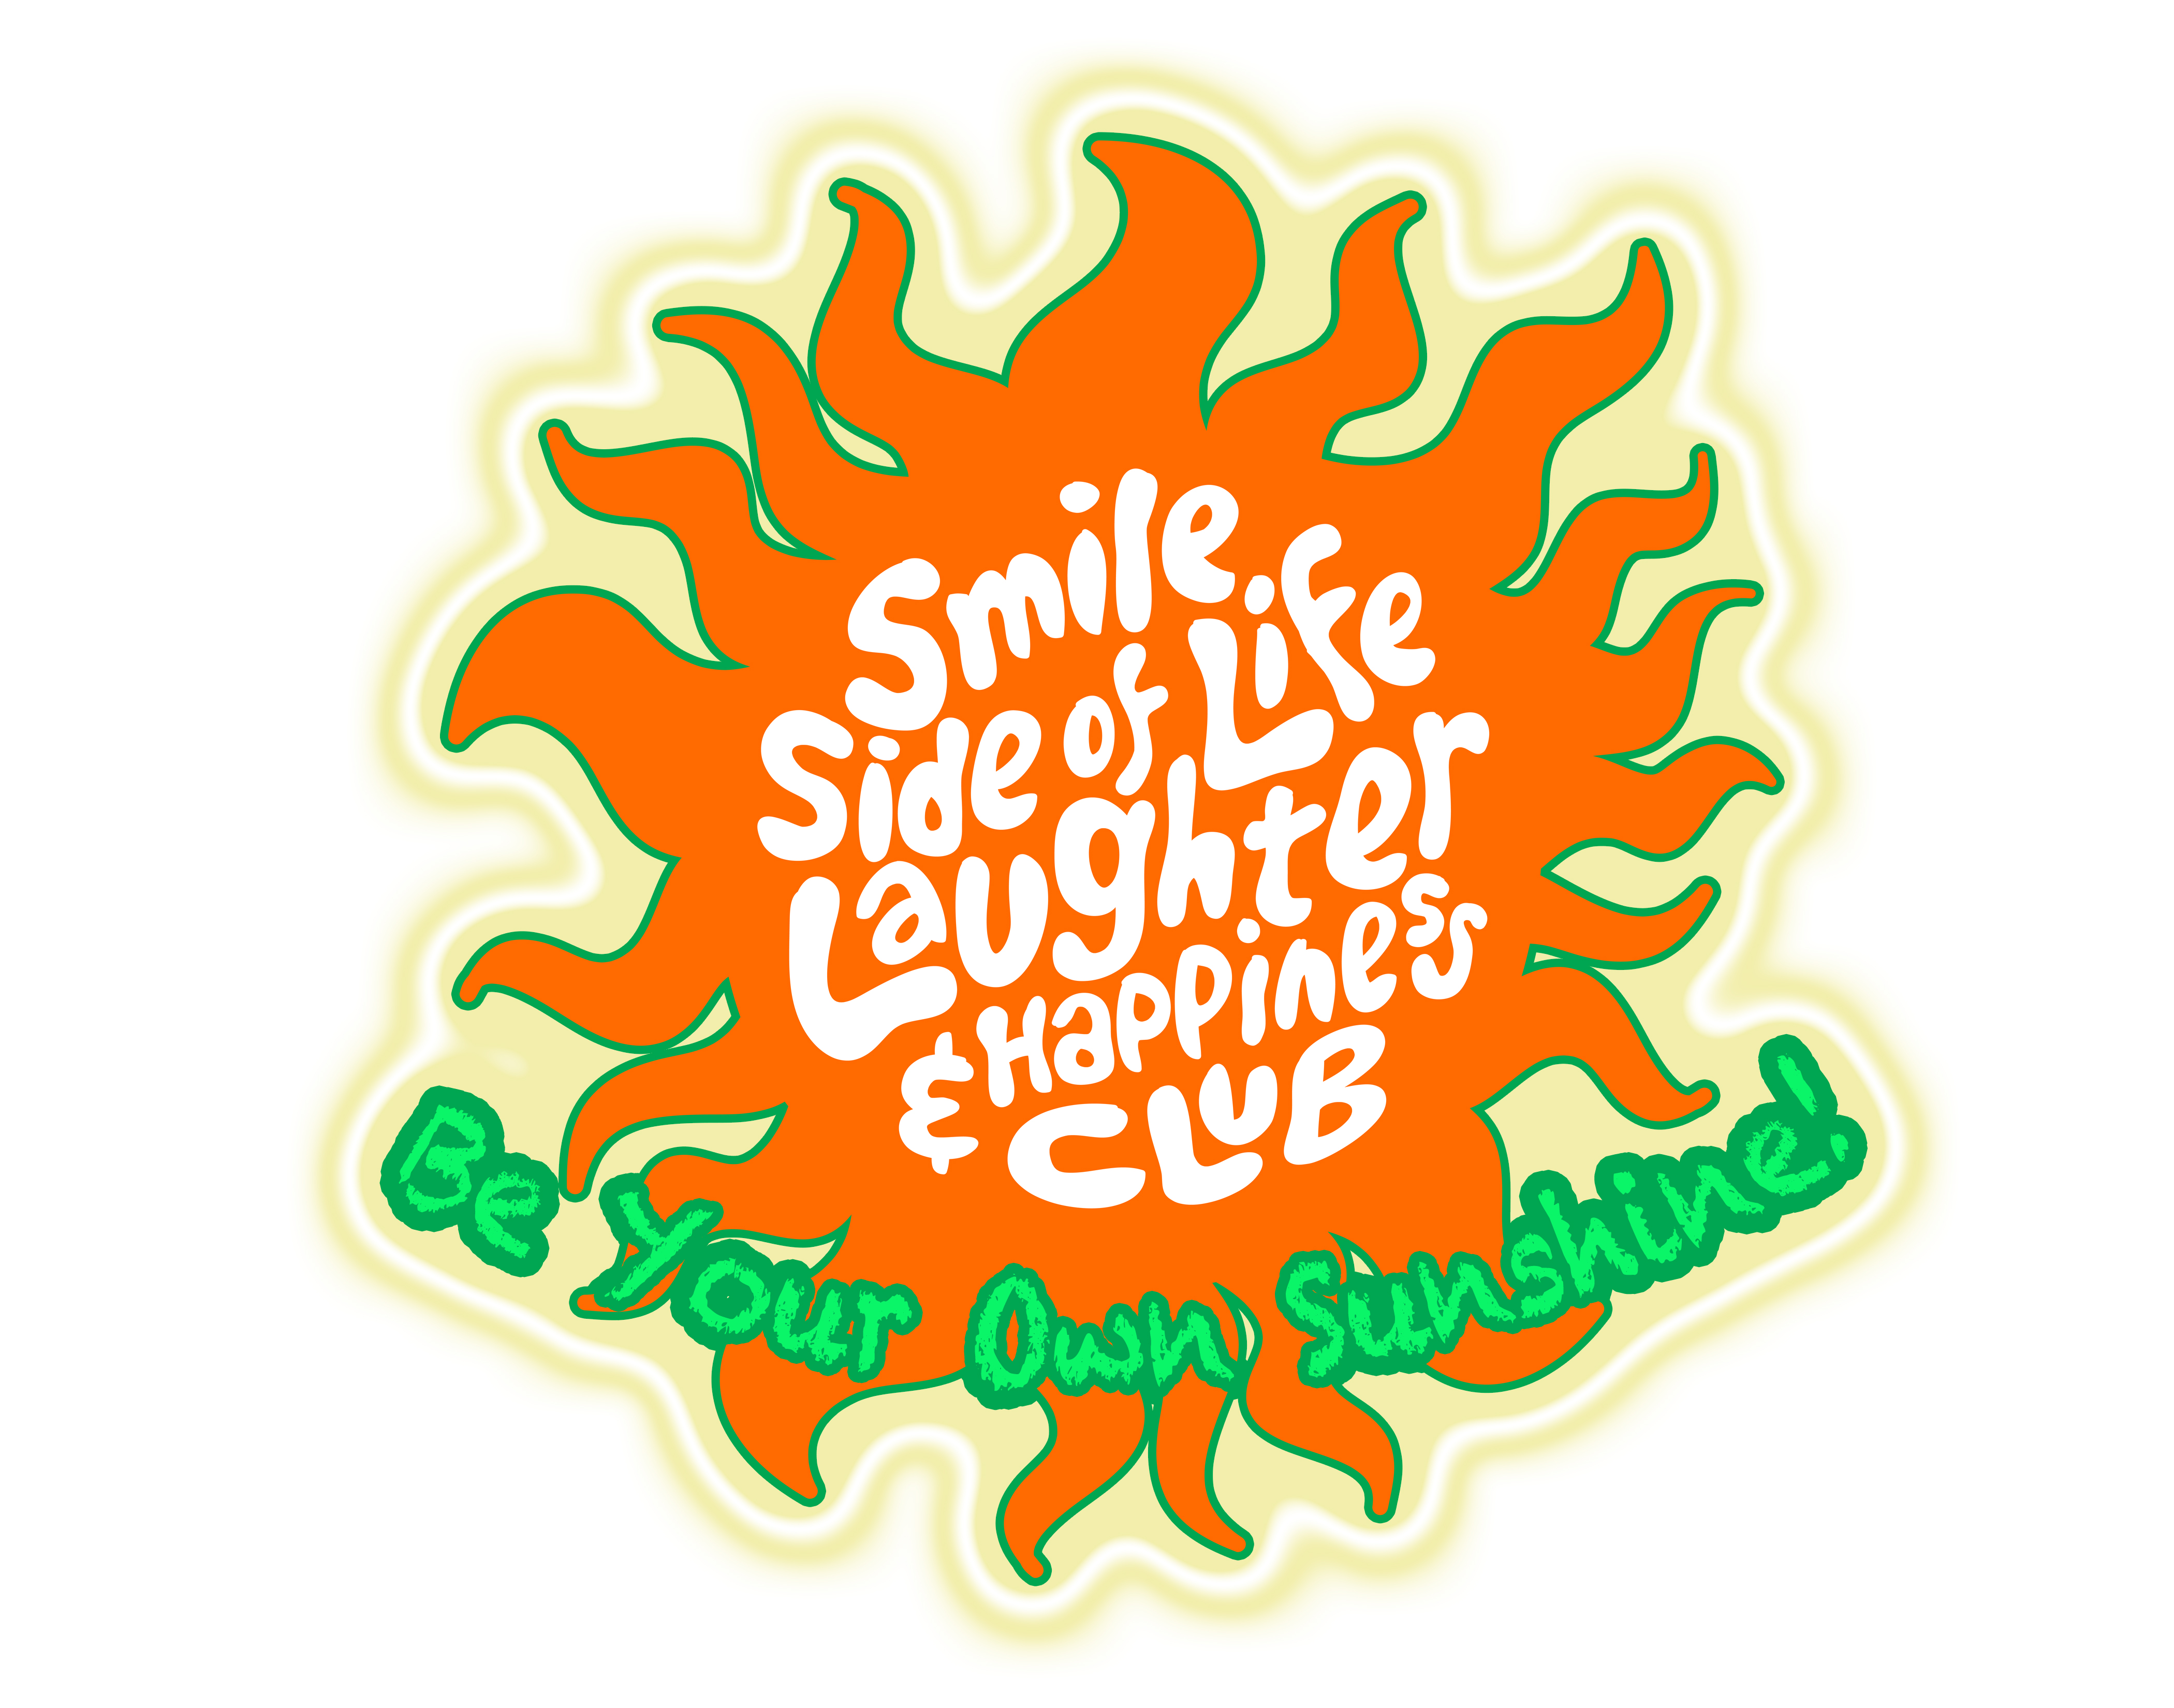 The Smile Side of Life Laughter and Happiness Club logo, a cartoon orange sun with the name written inside of it.